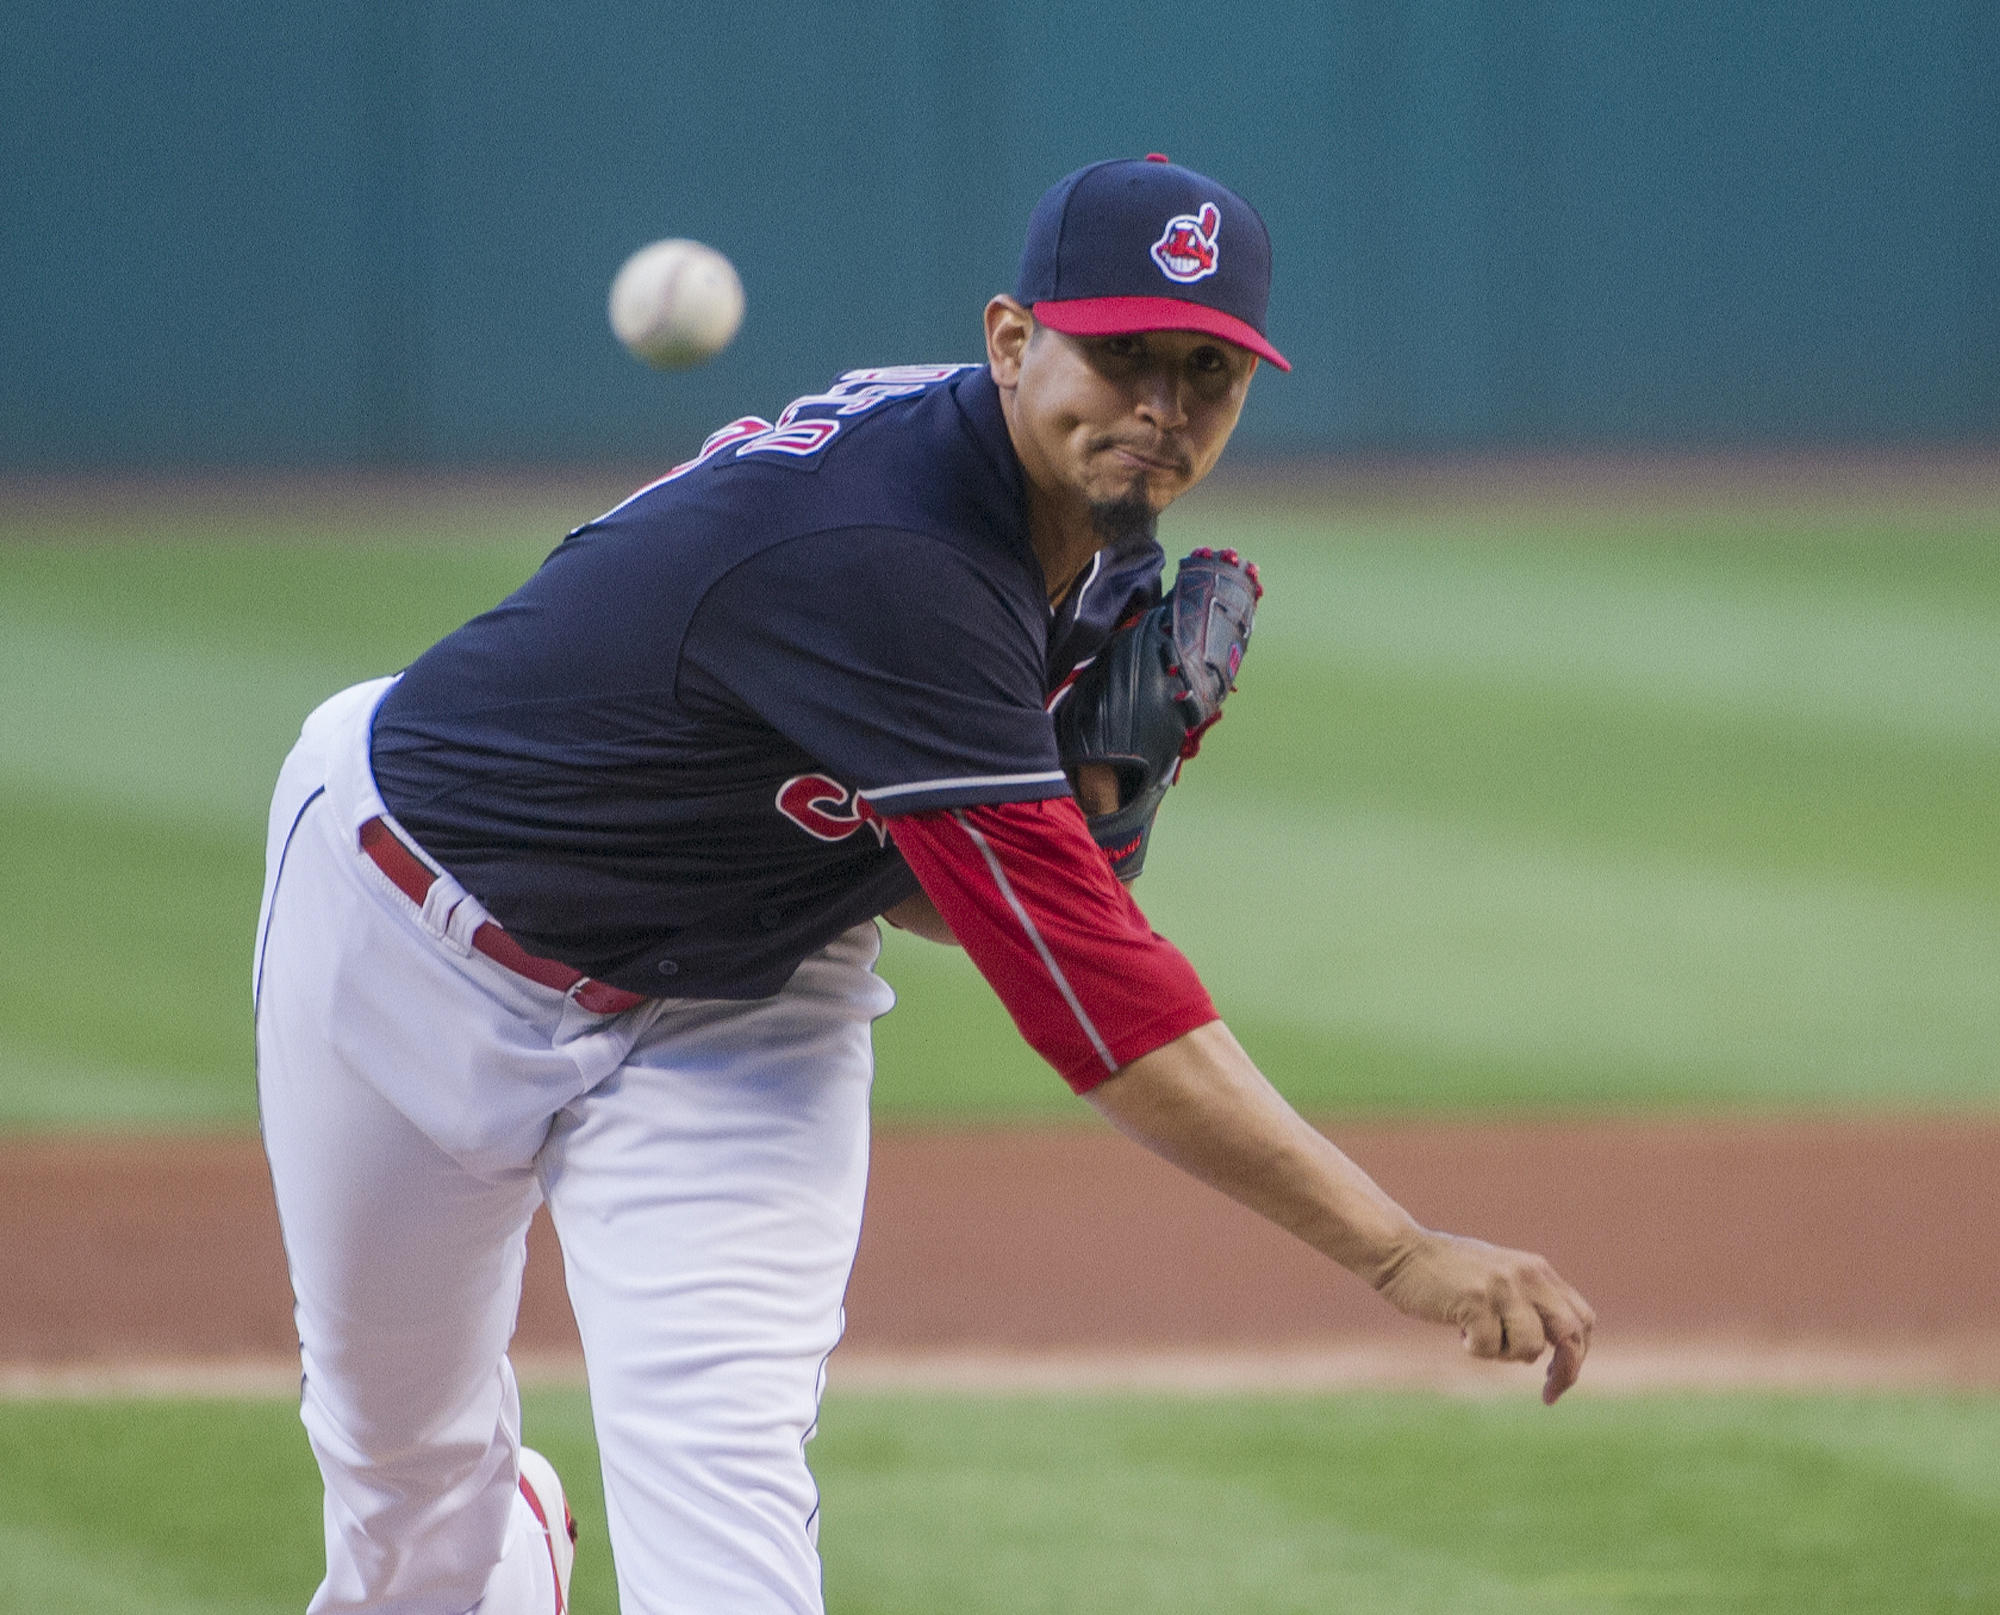 Cleveland Indians starting pitcher Carlos Carrasco delivers to a Miami Marlins batter during the first inning of a baseball game in Cleveland, Friday, Sept. 2, 2016. (AP Photo/Phil Long)